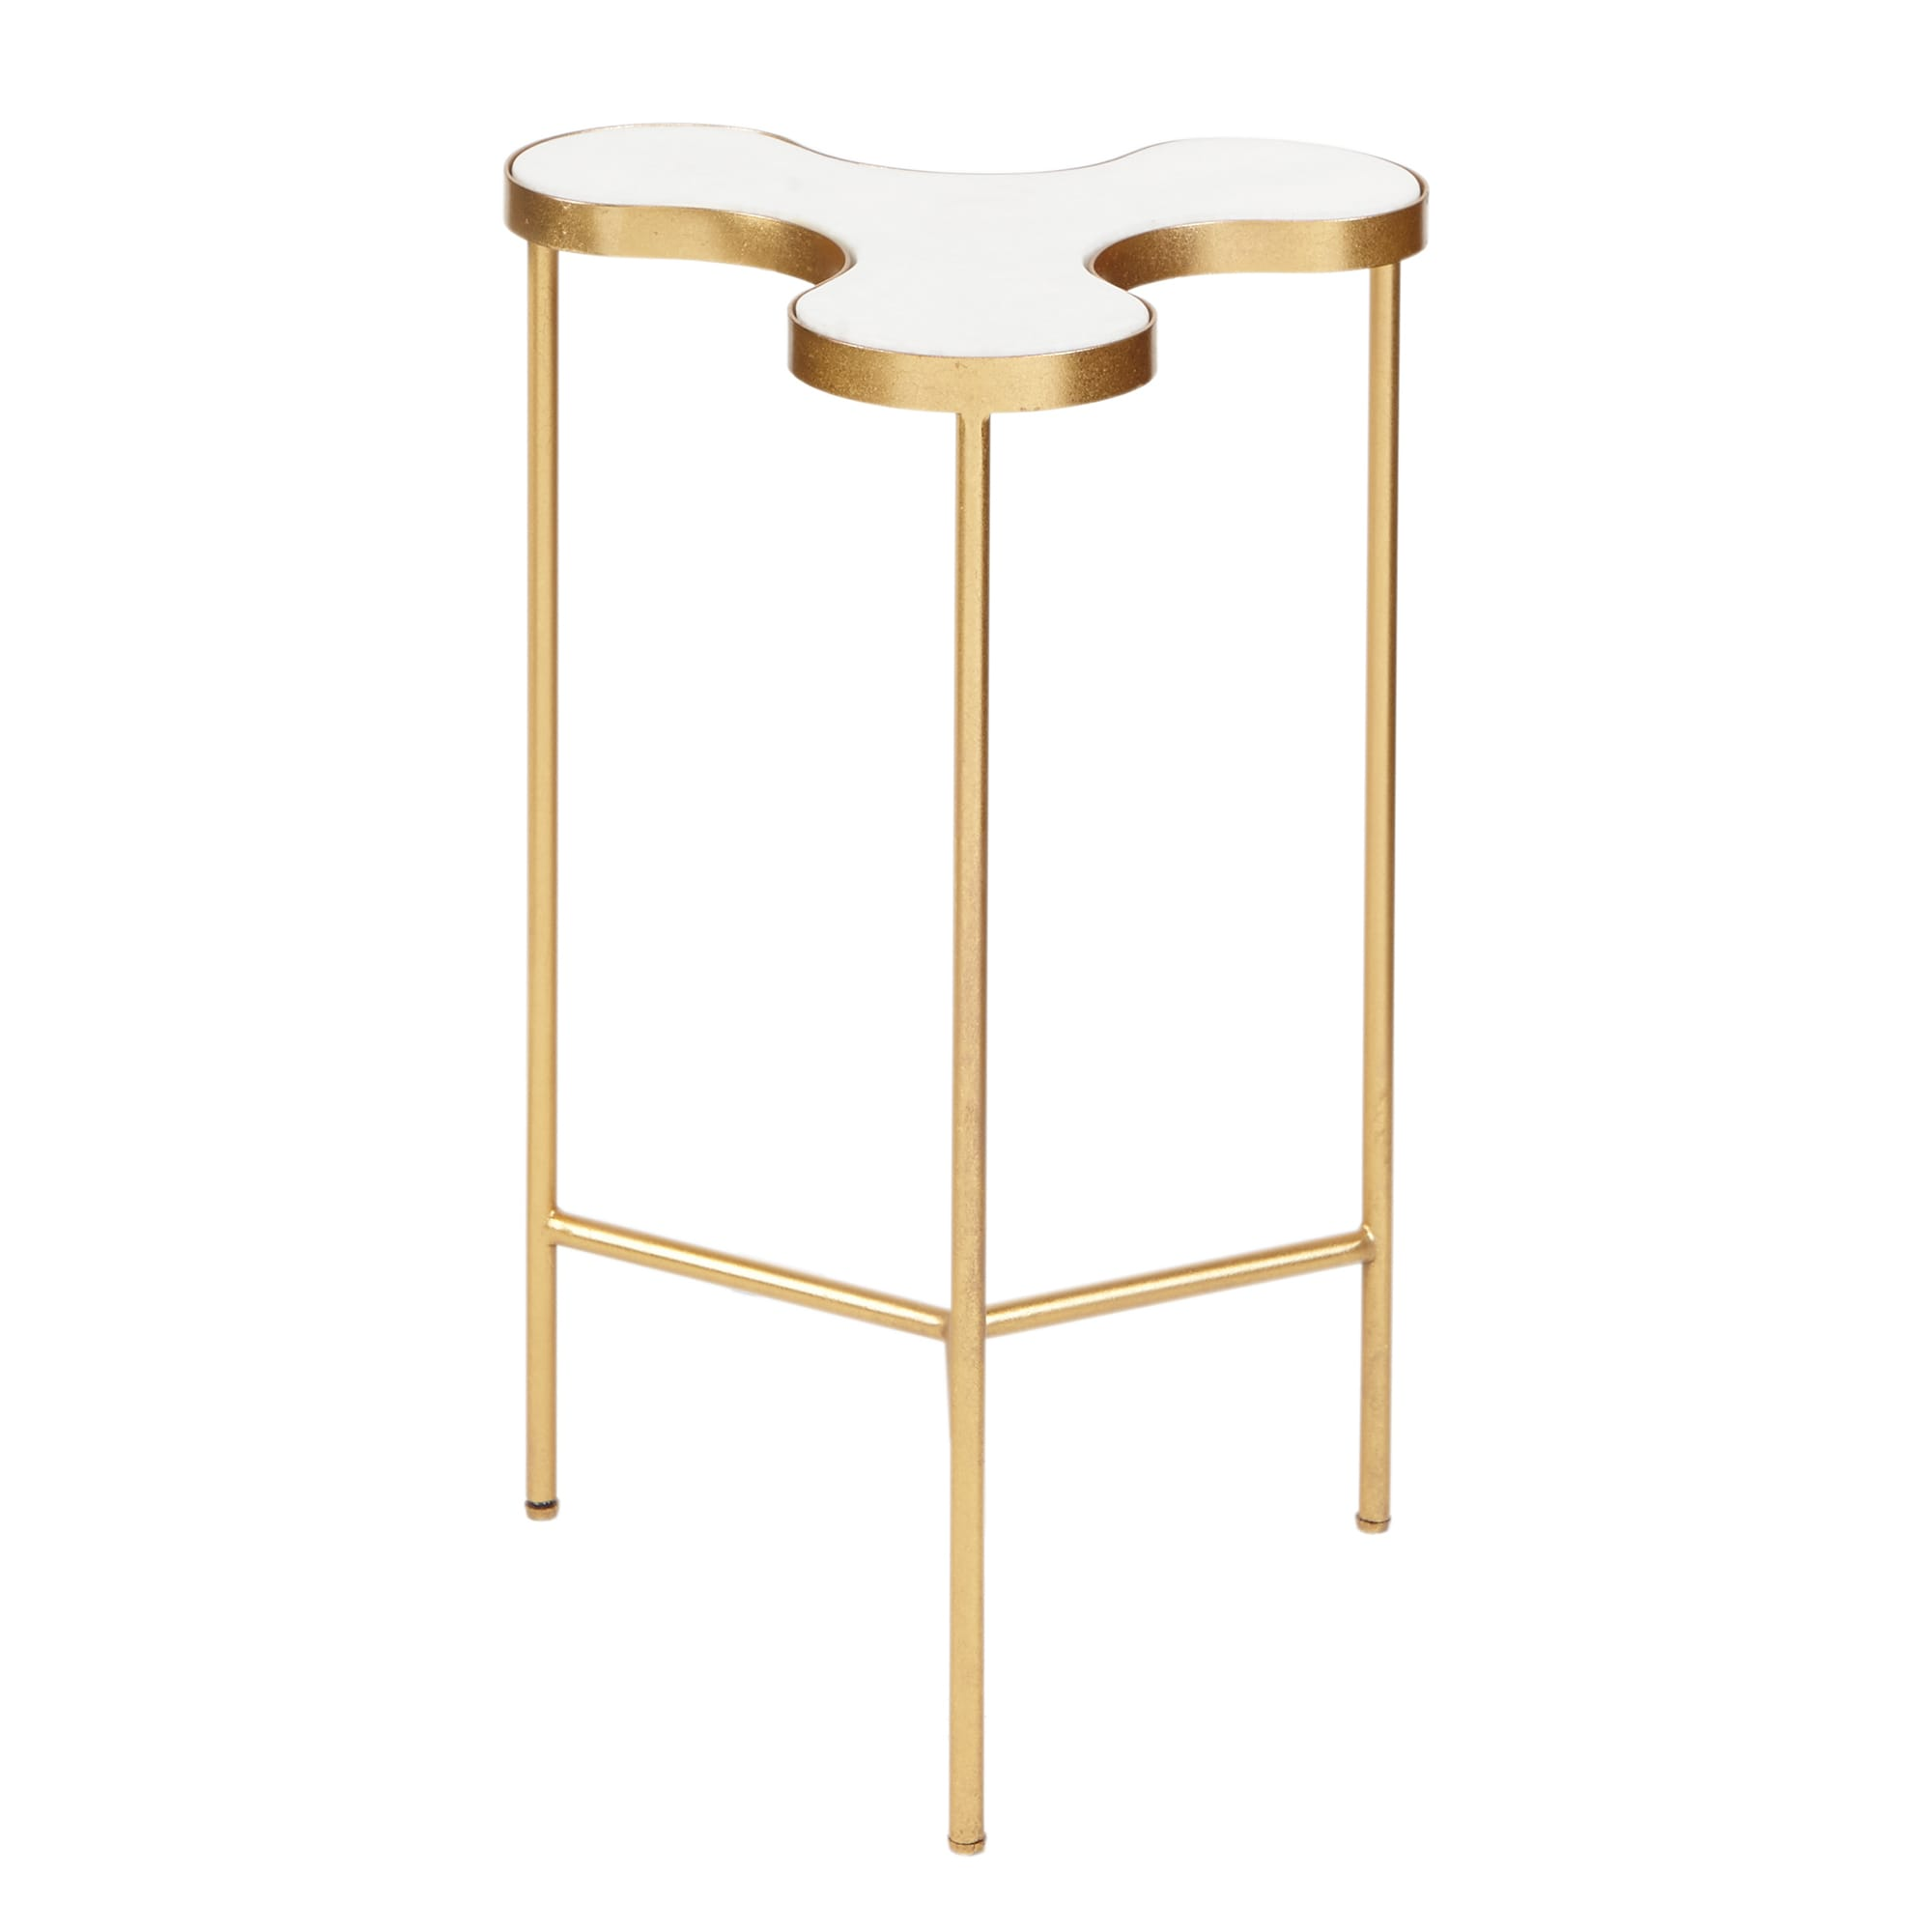 madison park interlaken gold accent end table set free shipping today outdoor shoe storage kids writing desk small smoked glass coffee cement dining chrome side low garden and